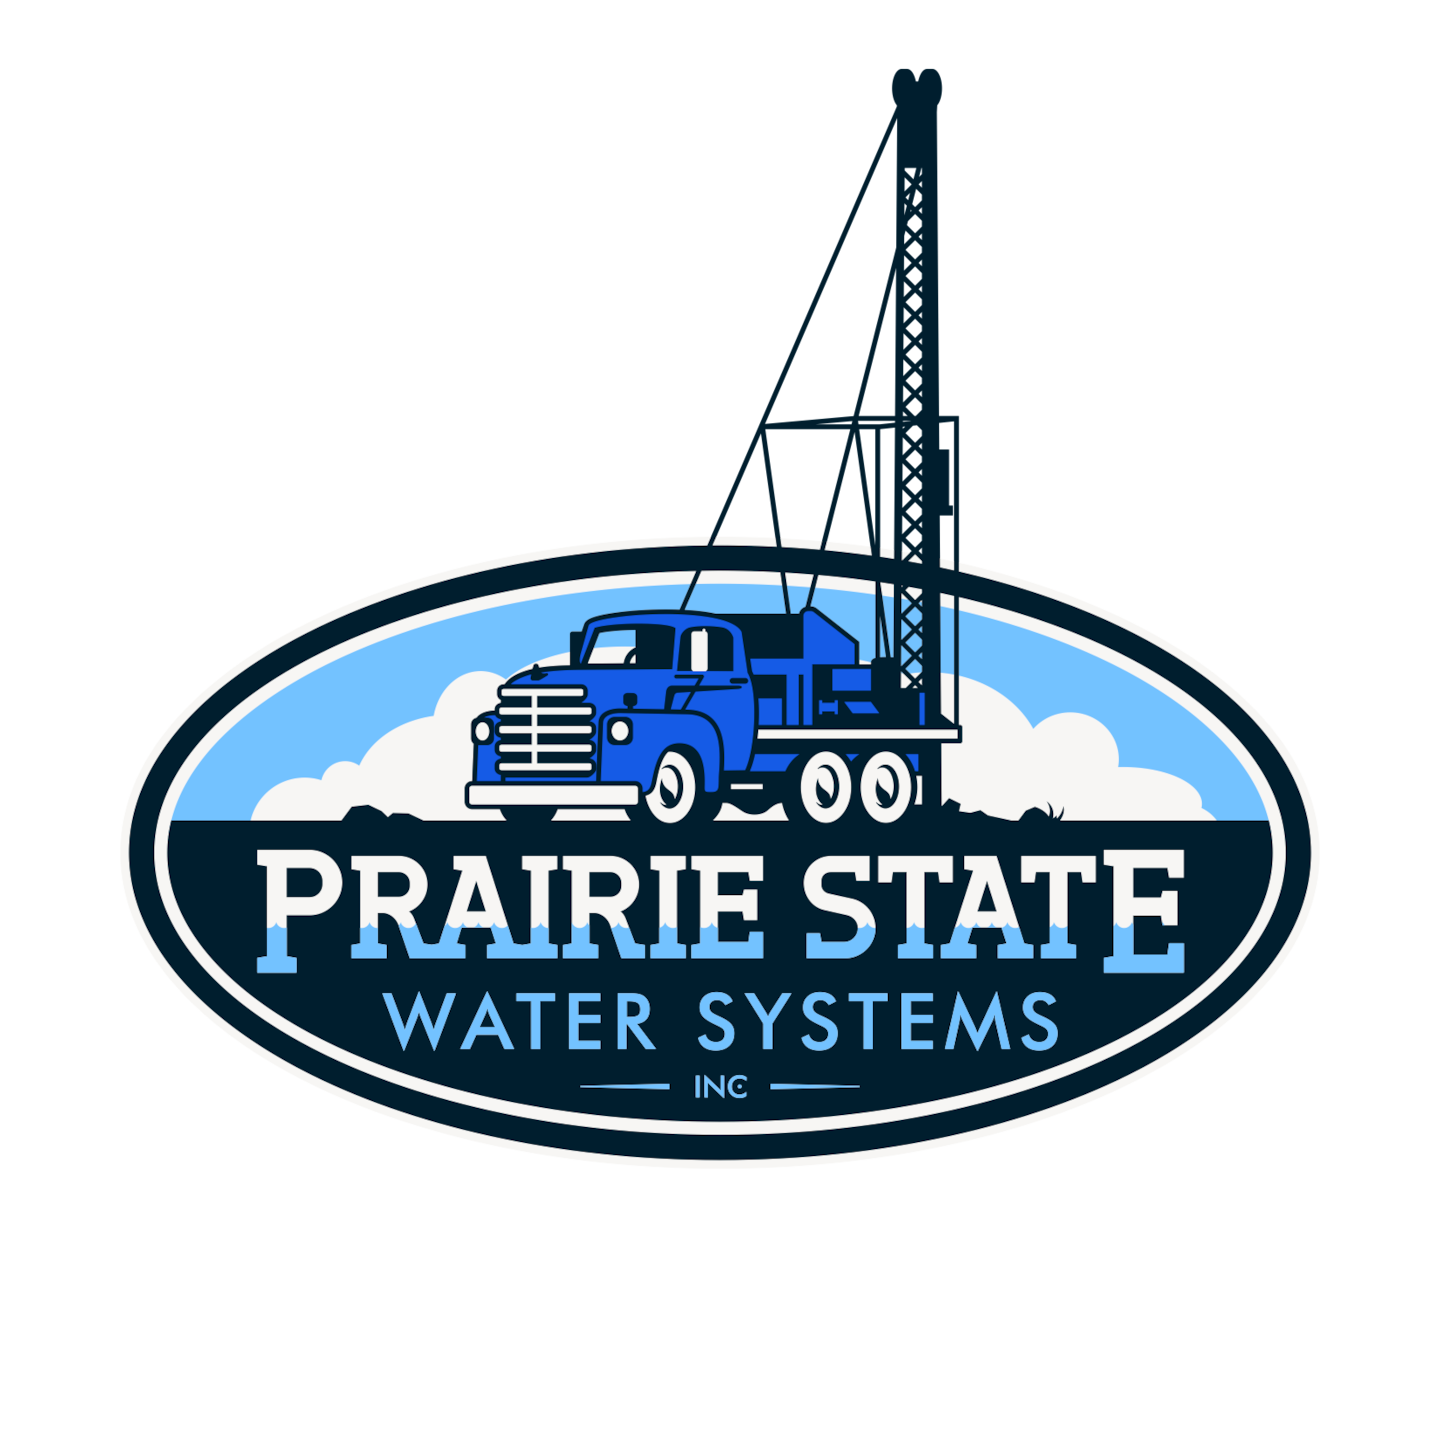 Prairie State Water Systems Inc